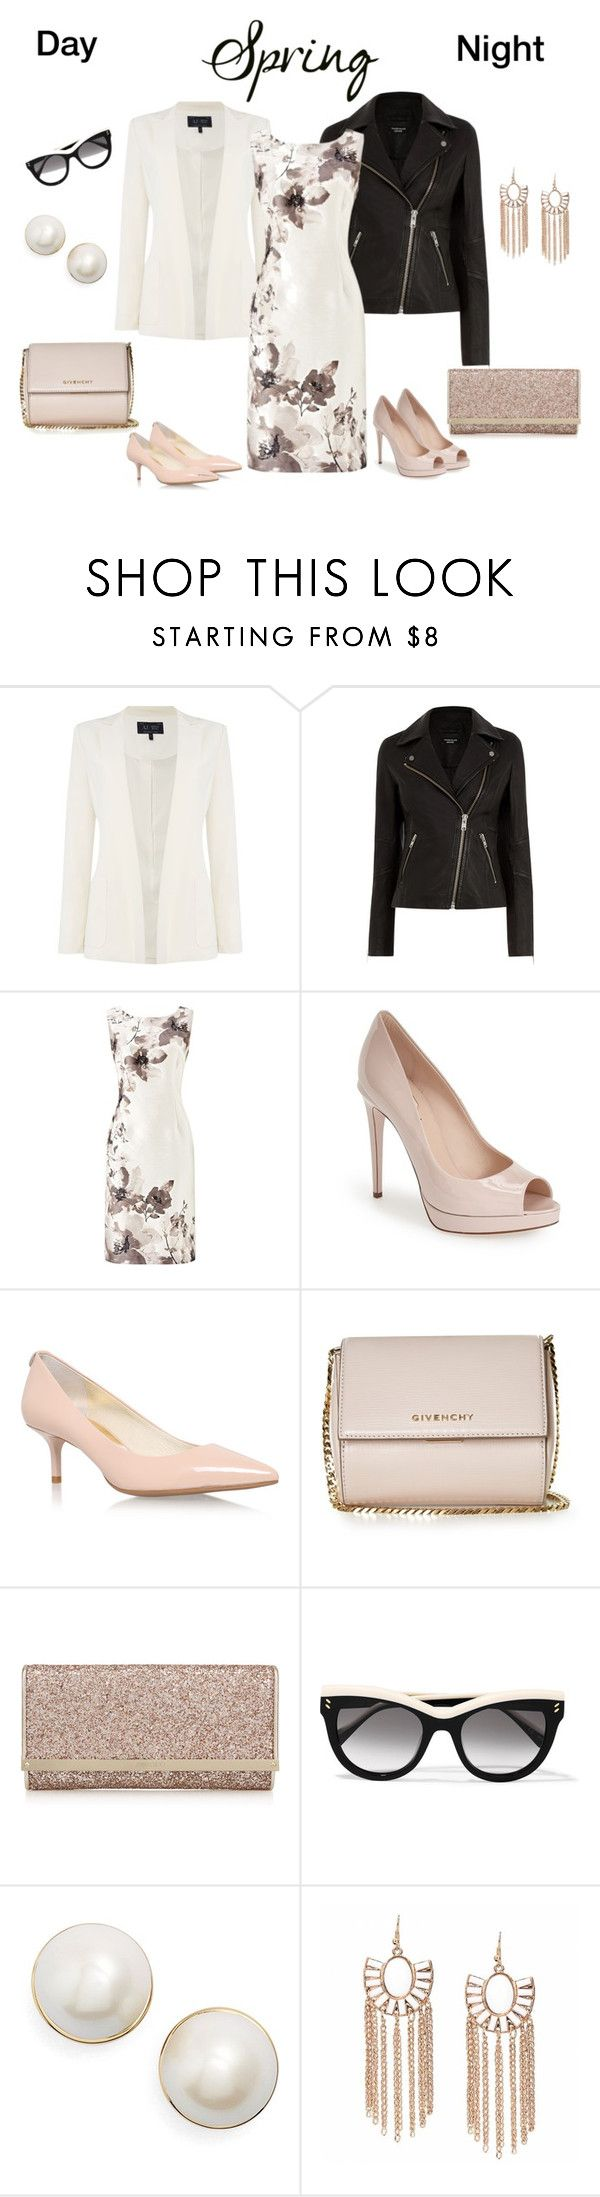 """""""Spring Day to Night"""" by southindianmakeup1990 ❤ liked on Polyvore featuring Armani Jeans, Warehouse, Jacques Vert, Fendi, MICHAEL Michael Kors, Givenchy, STELLA McCARTNEY and Kate Spade"""